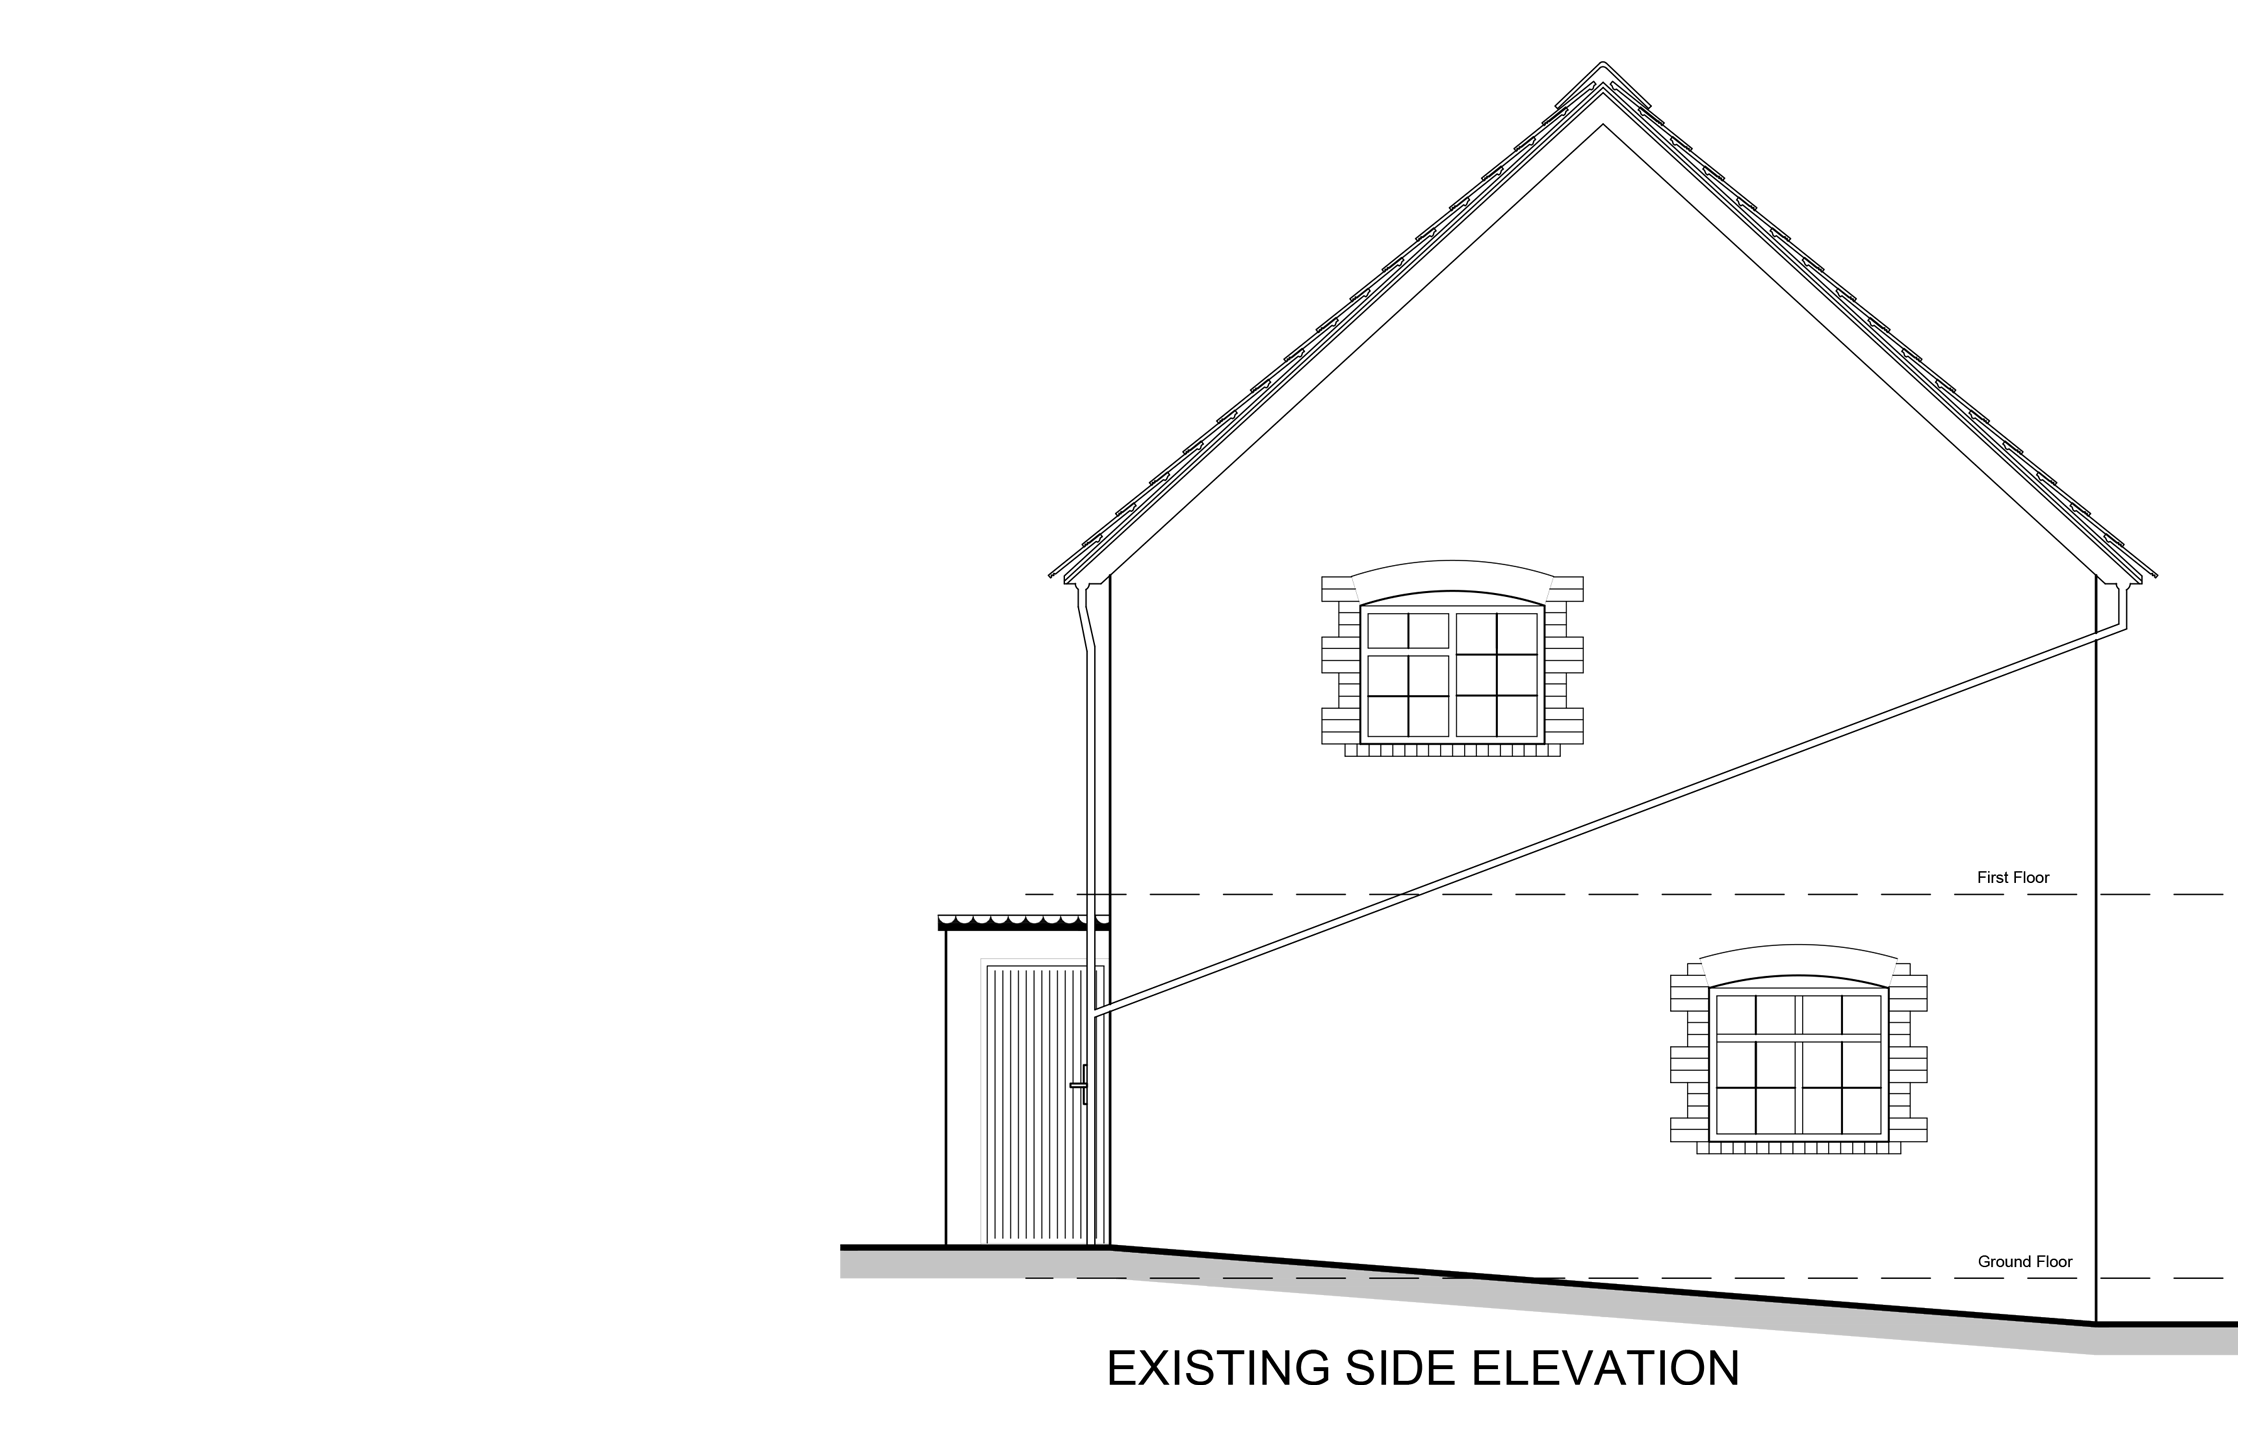 Side Existing